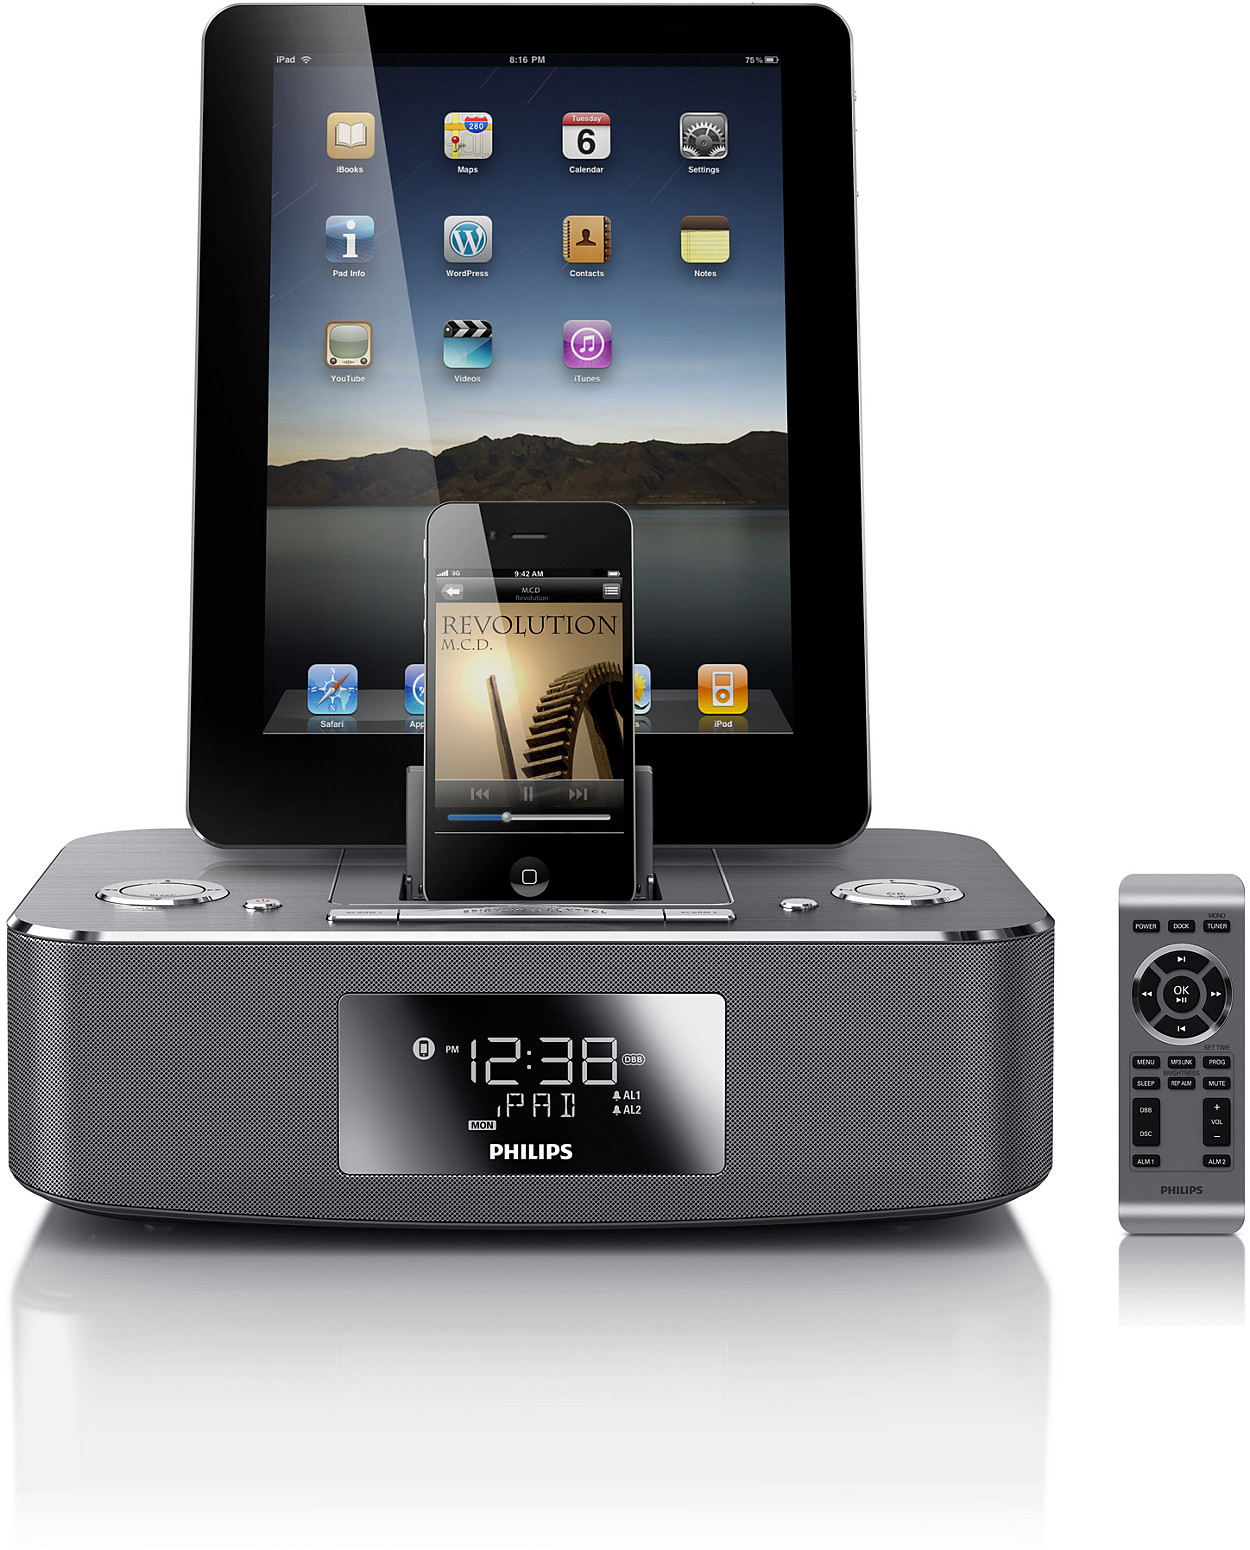 docking station for ipod iphone ipad dc390 98 philips. Black Bedroom Furniture Sets. Home Design Ideas